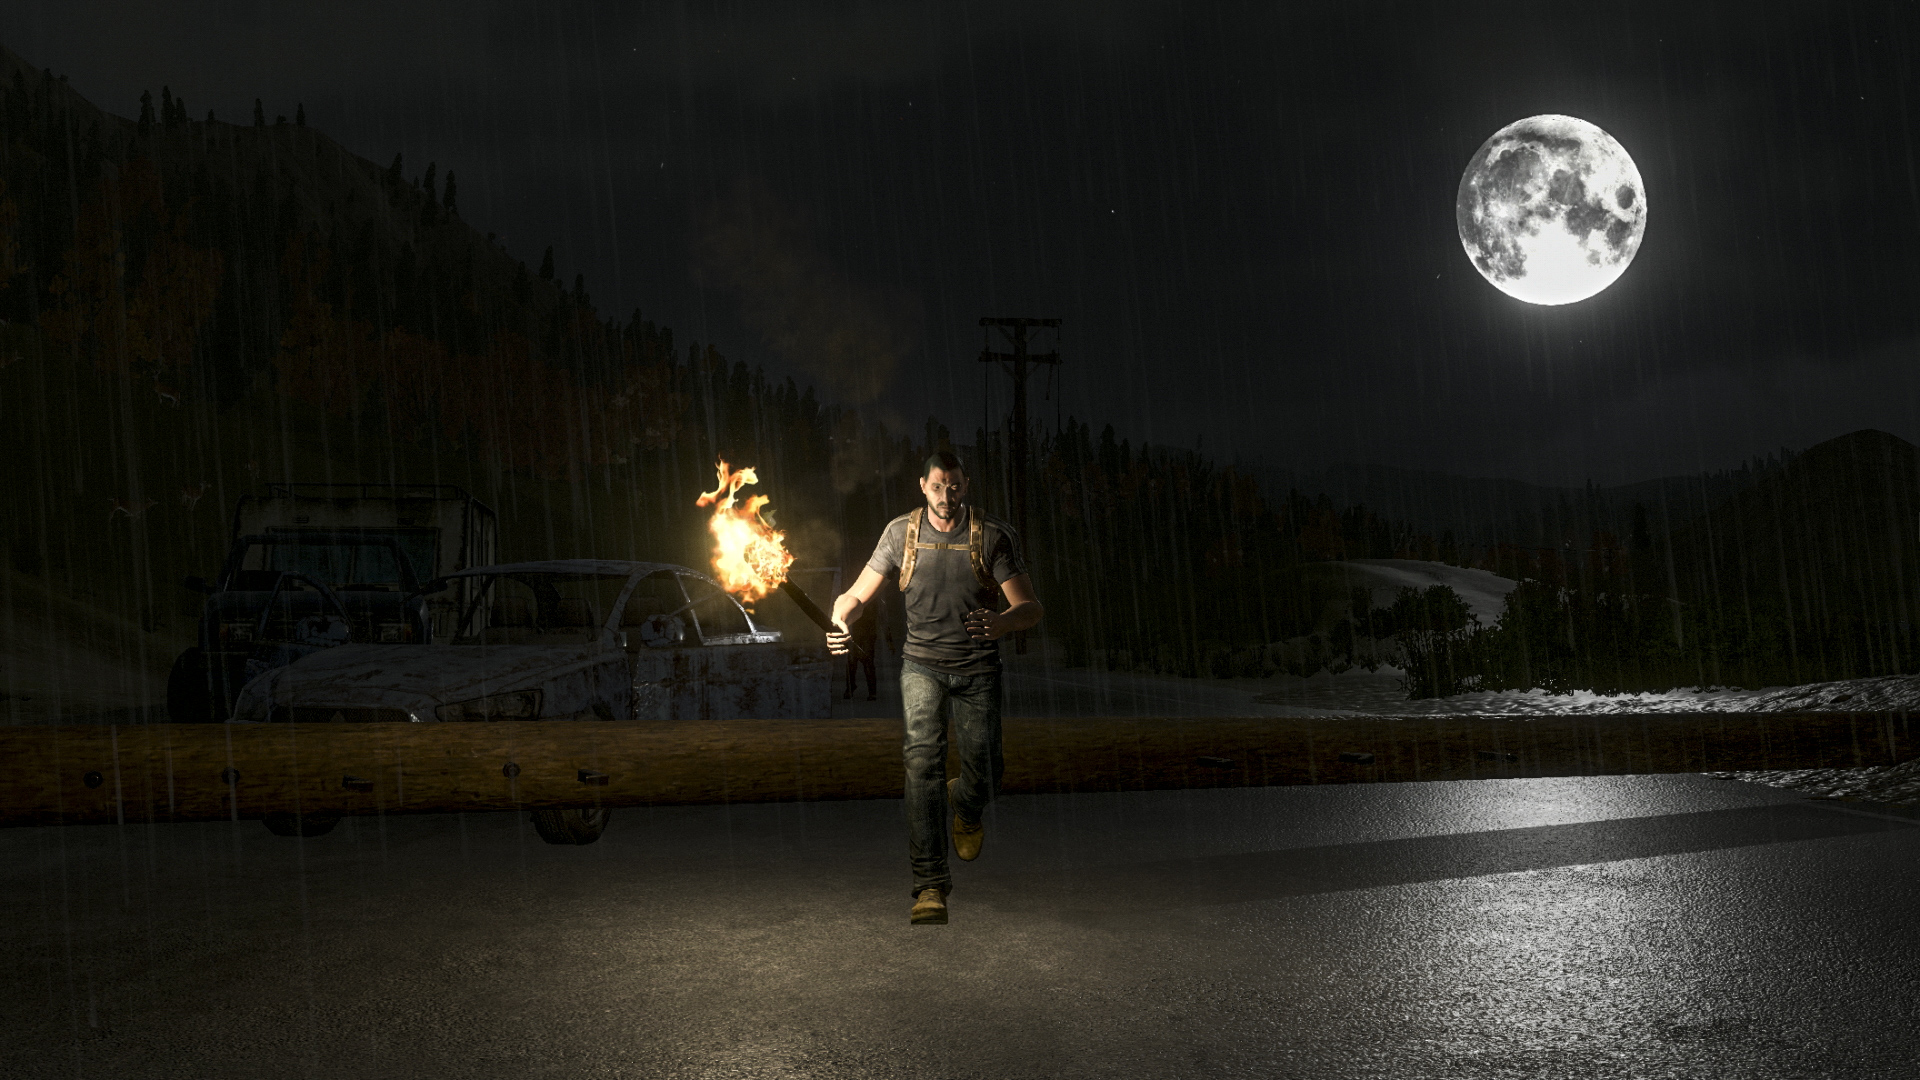 h1z1 torch wallpaper 64166